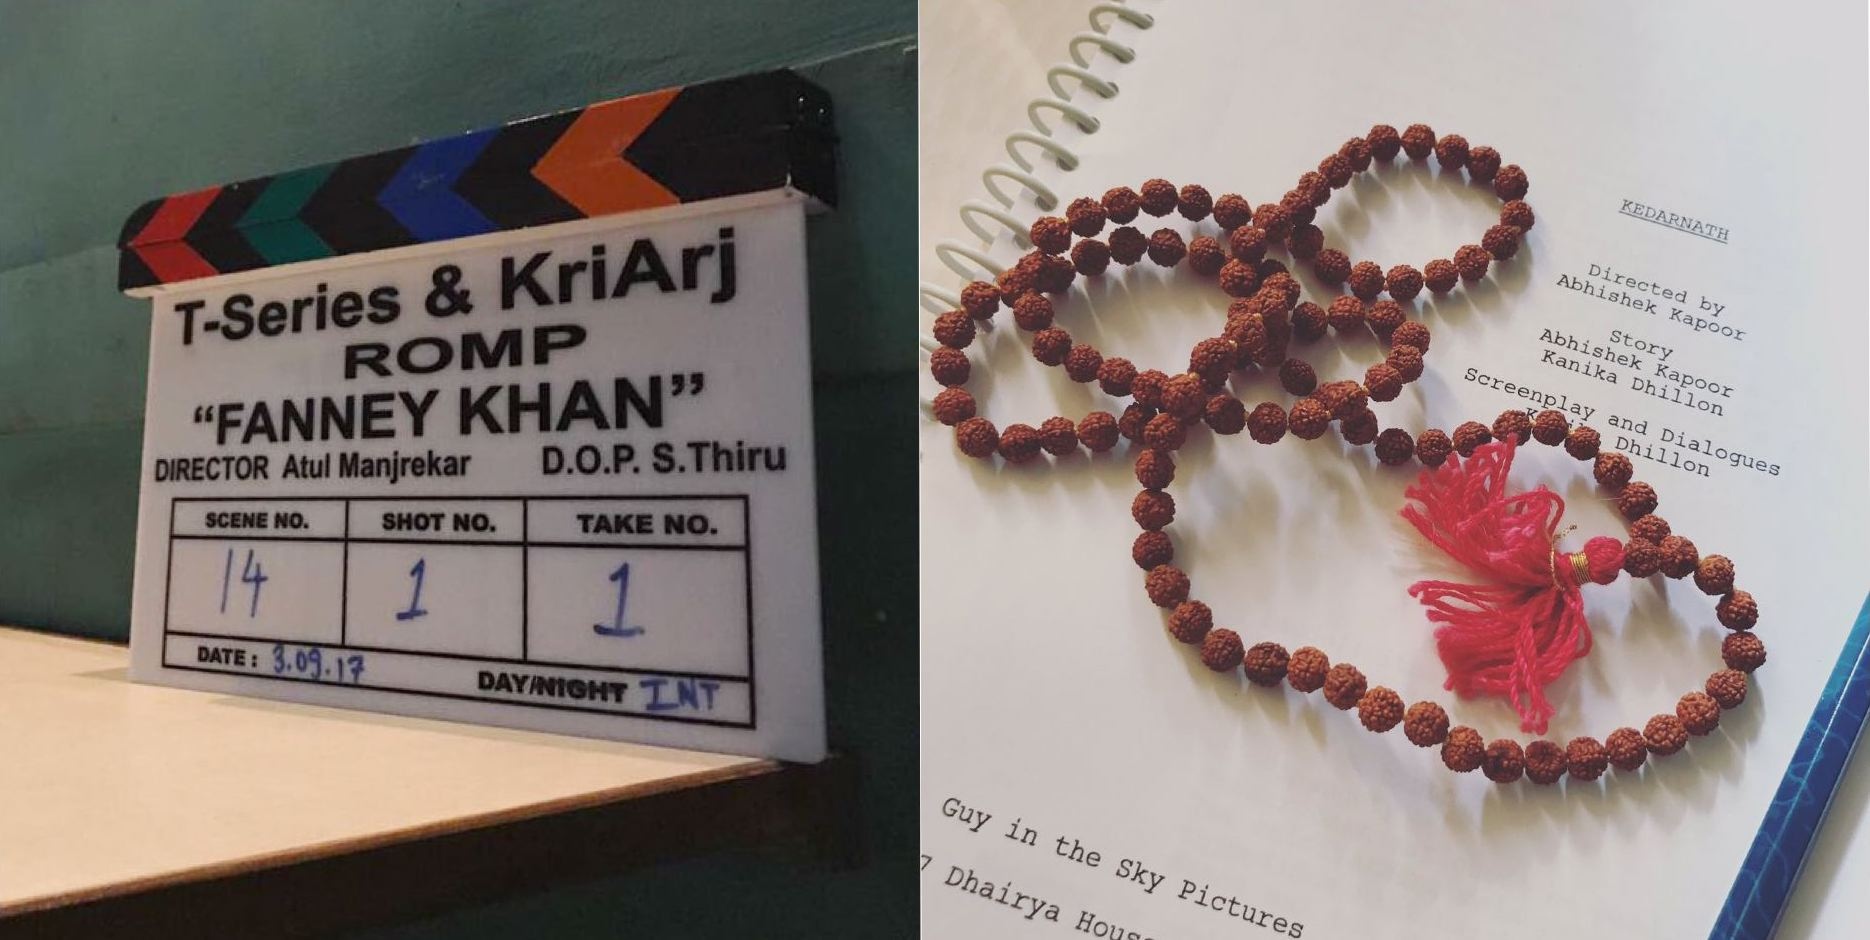 Two exciting films, Kedarnath and Fanney Khan to go on floors simultaneously!